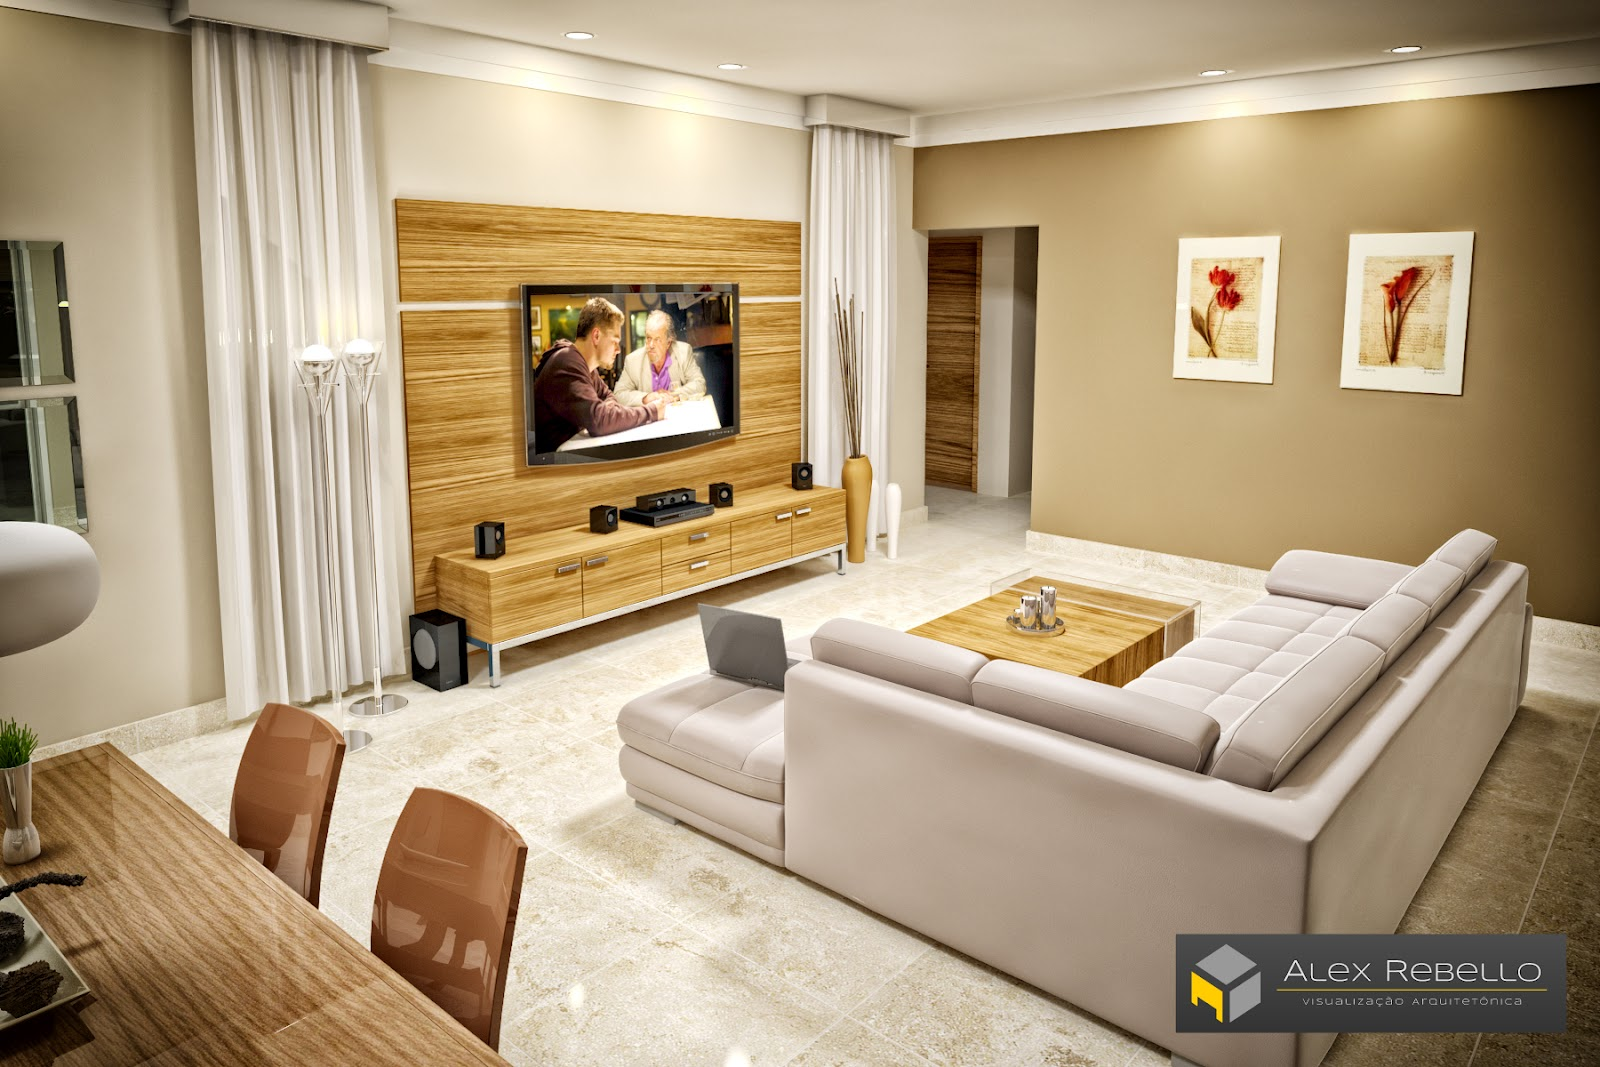 Sala De Estar E Tv ~ Sala De Jantar E Estar Conjugadas Decoradas Hd Wallpapers Pictures